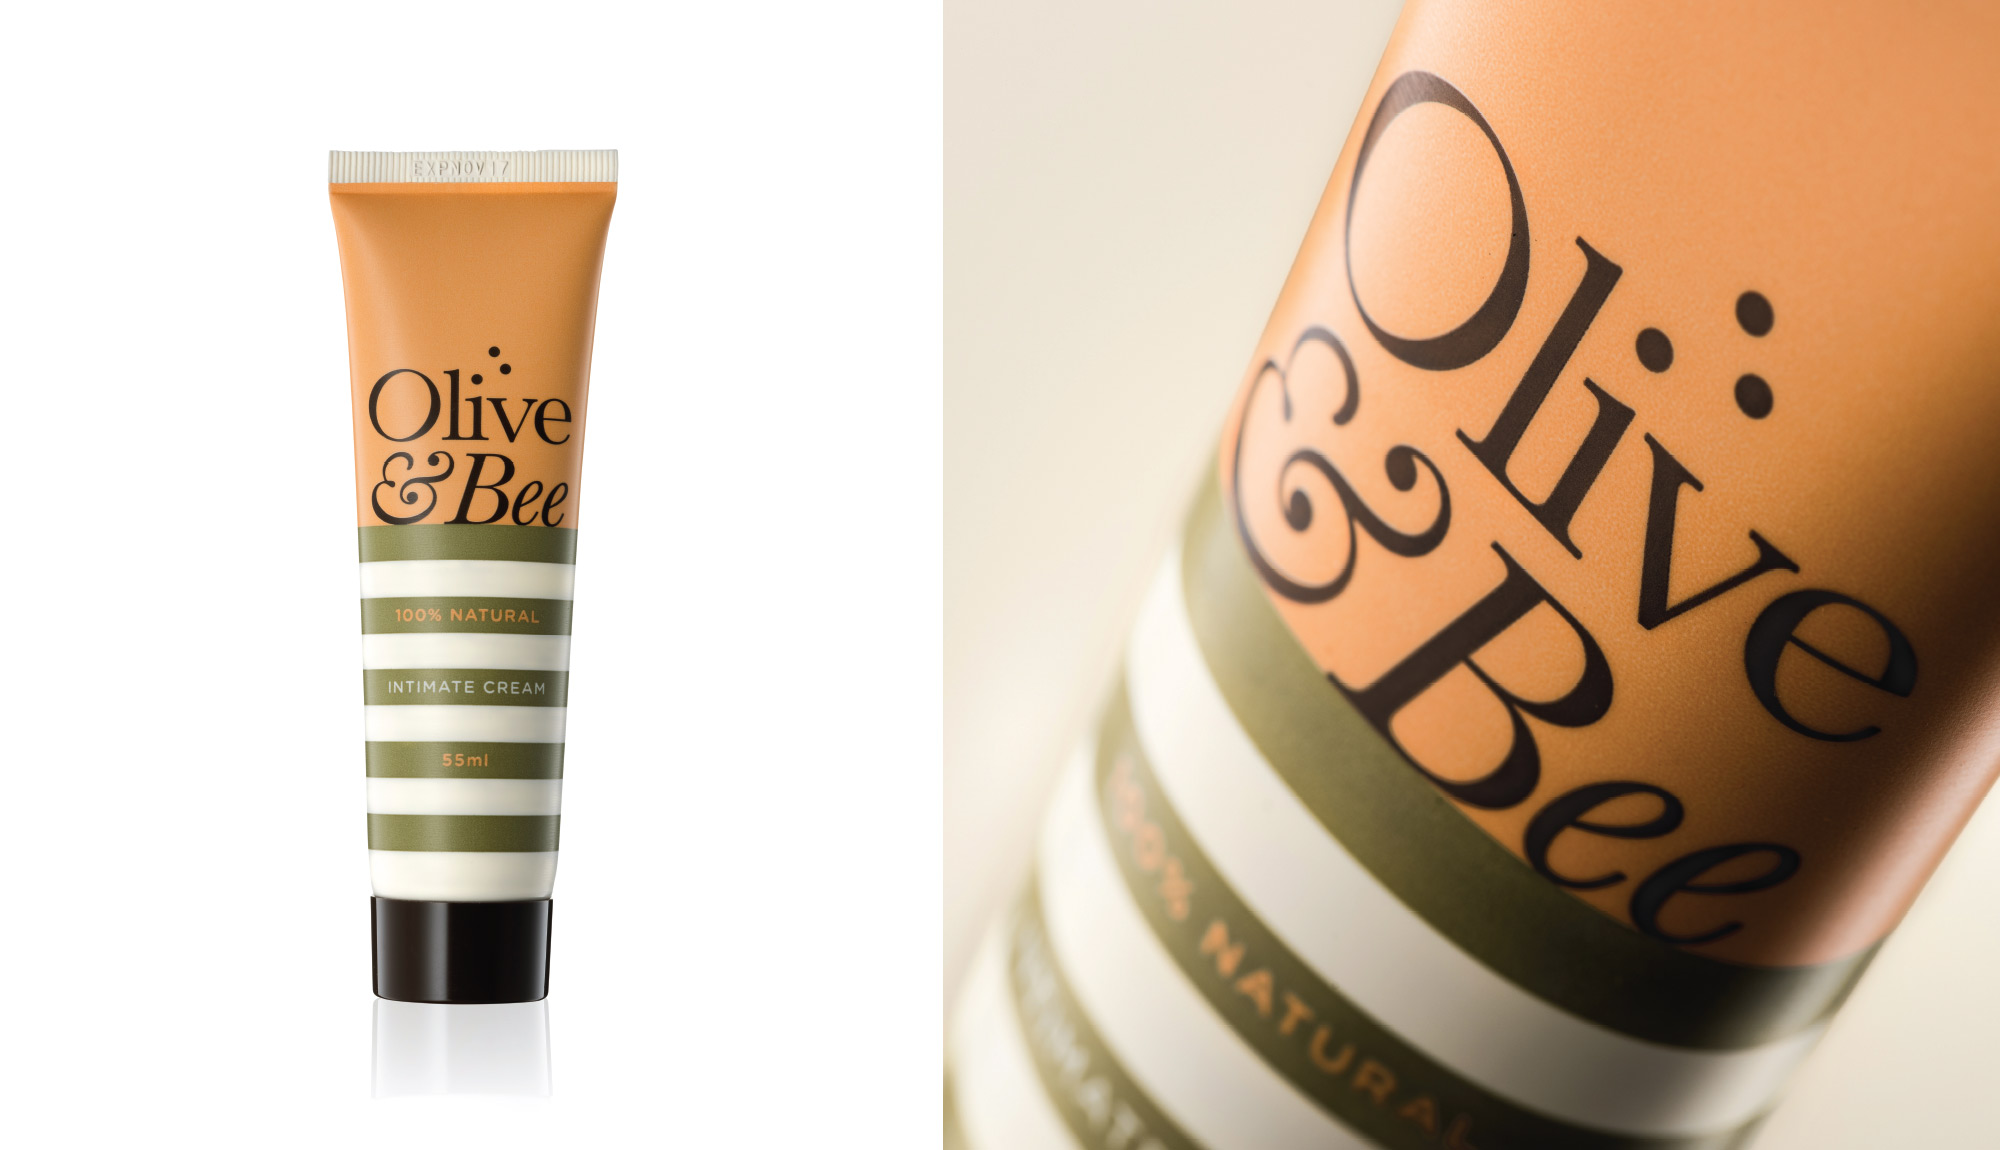 Olive & Bee packaging